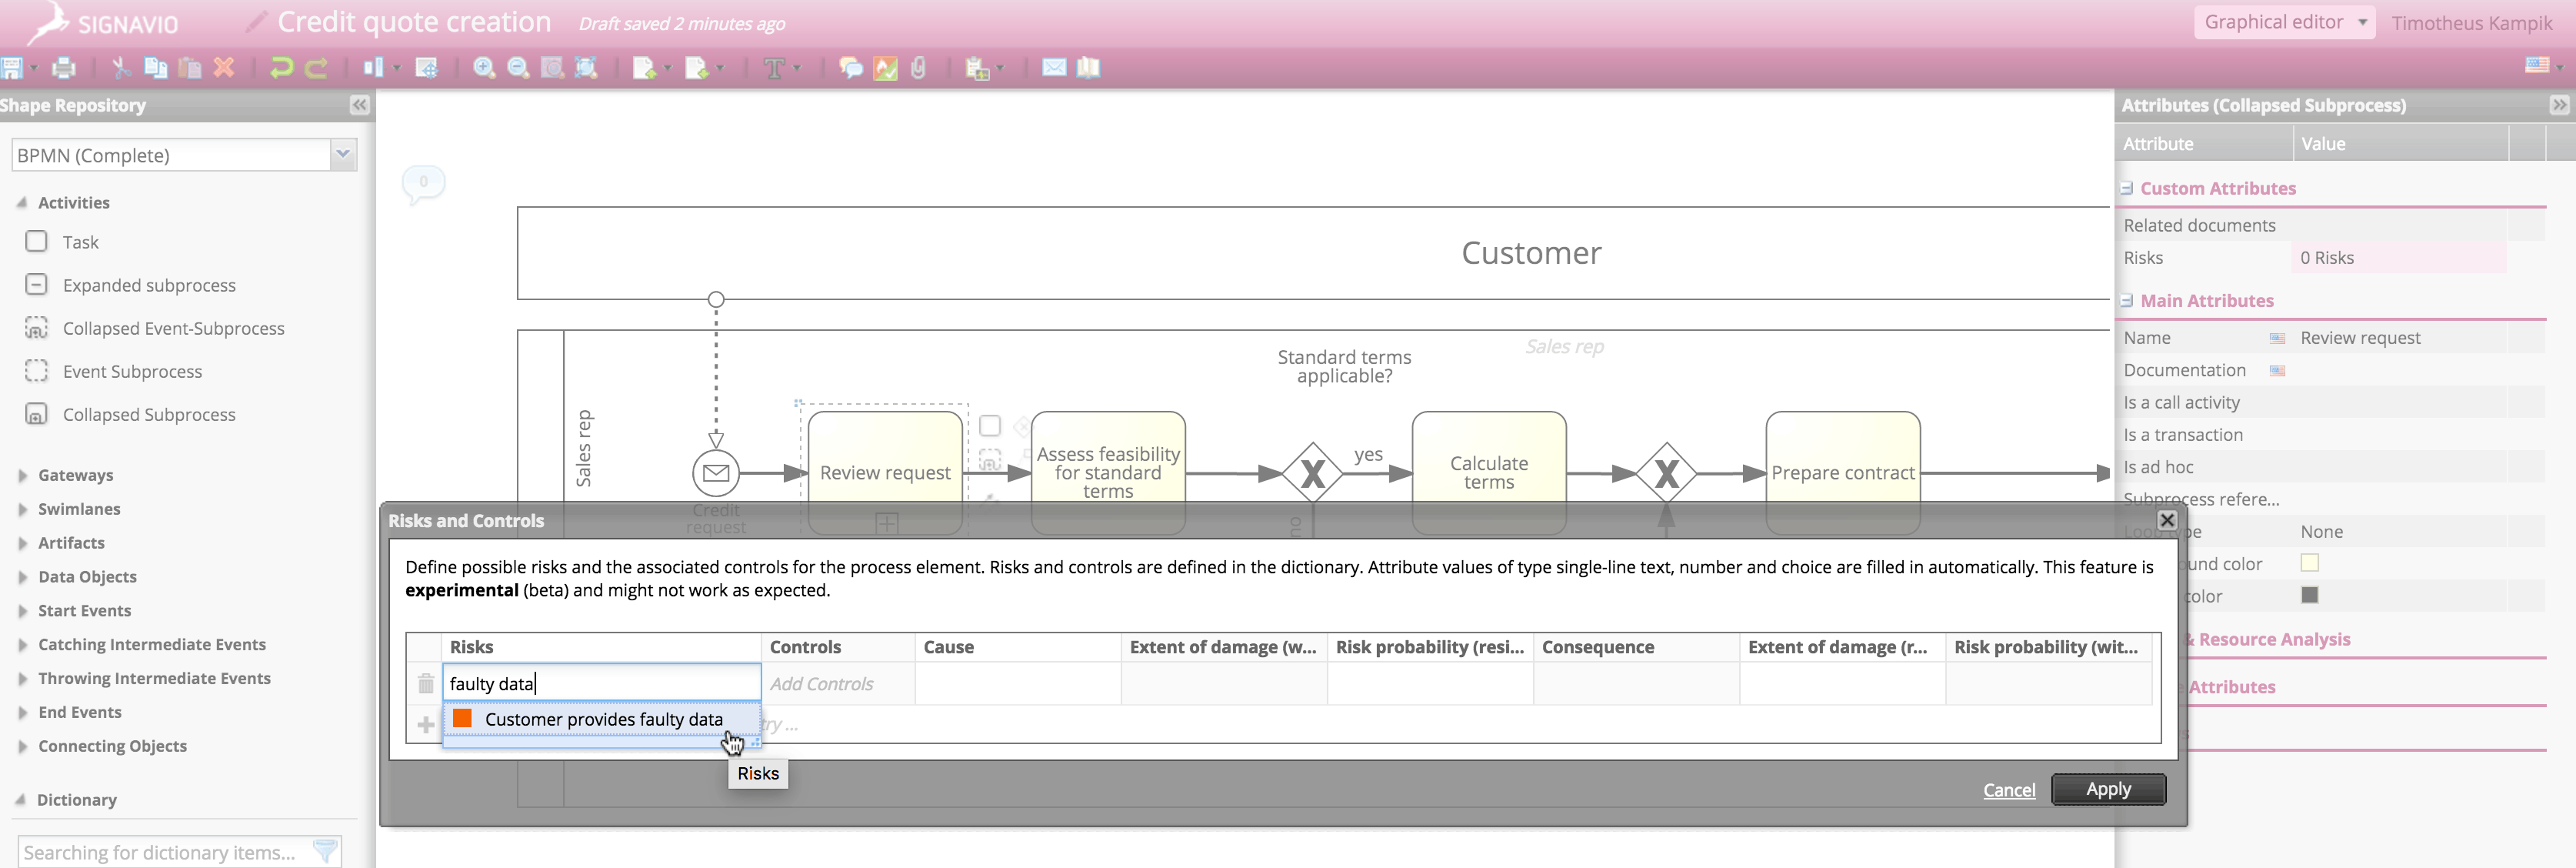 Risk management: Suggestions as you type screen